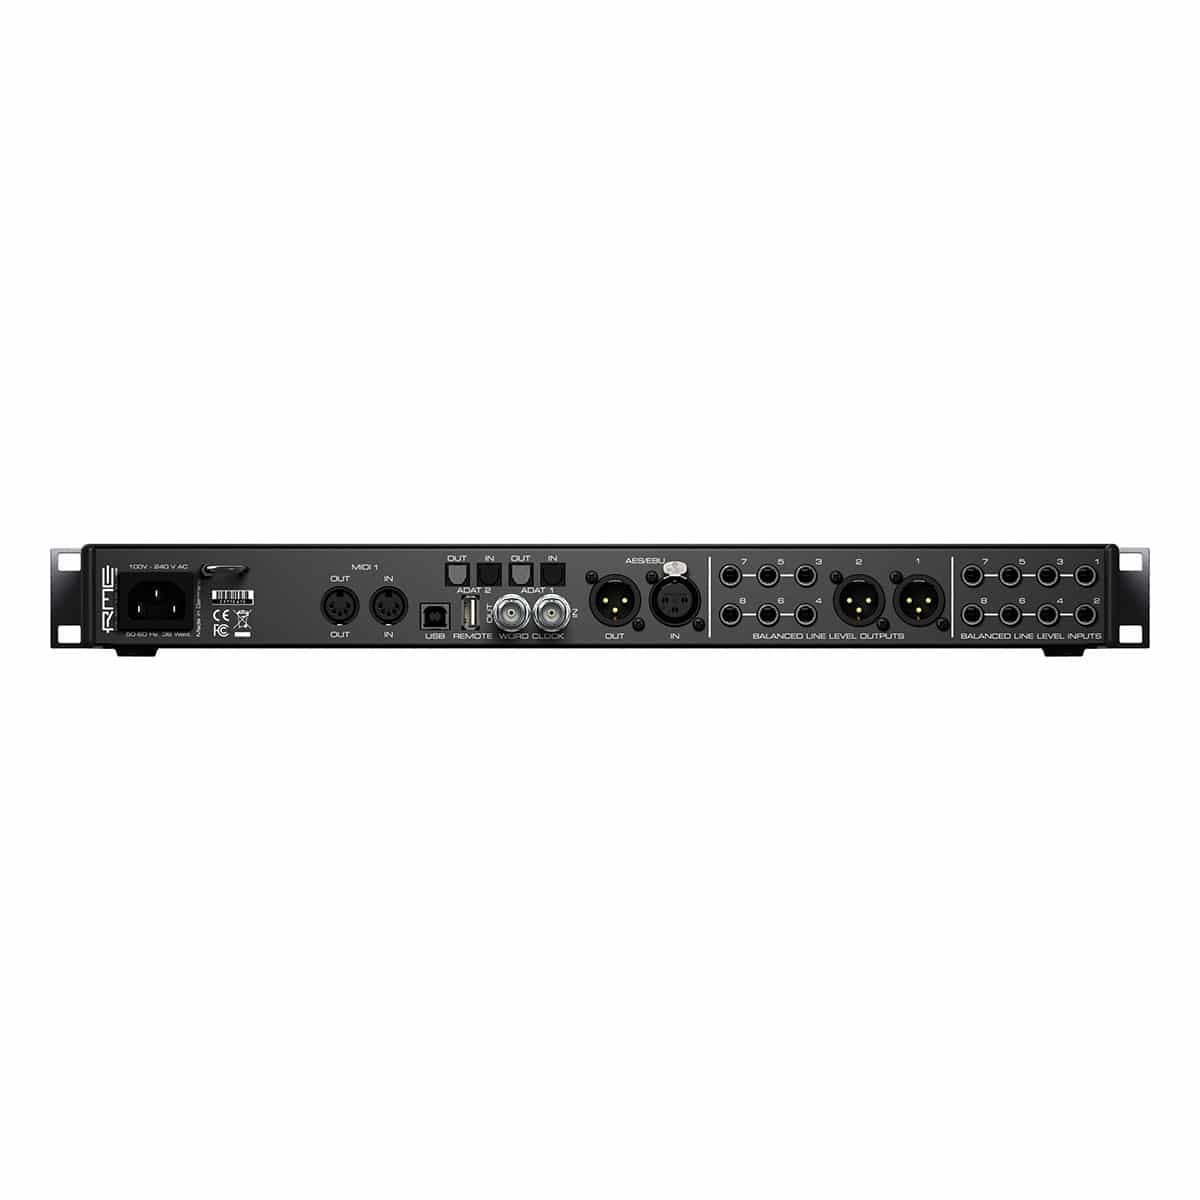 RME Fireface Ufx ii 03 Pro Audio, Audio Digitale Convertitori e Schede Audio, Schede Audio per PC e MAC